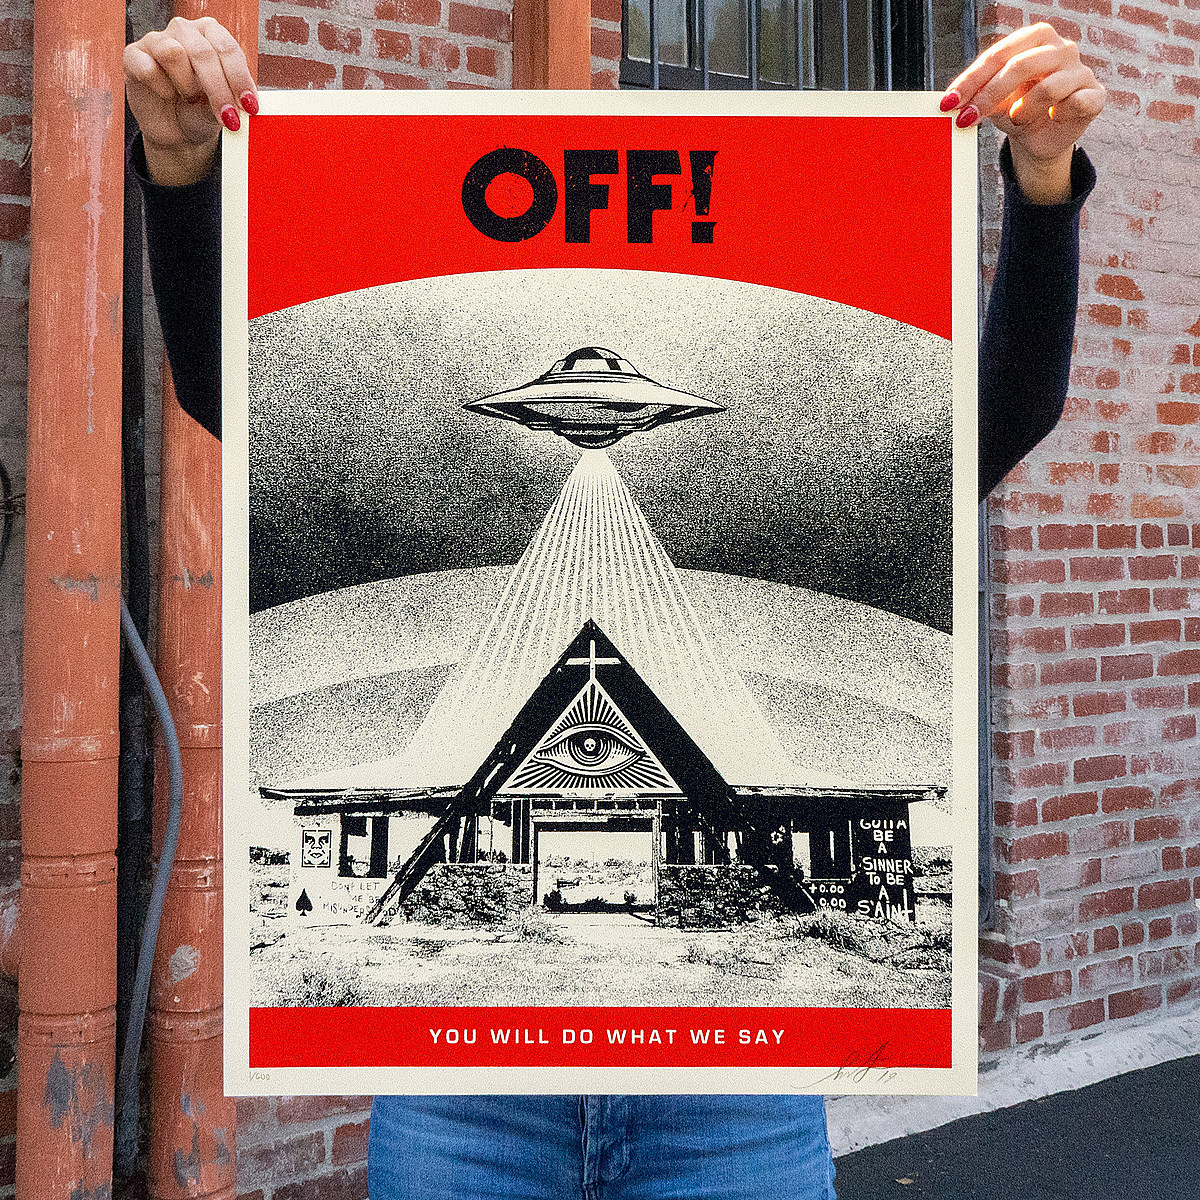 OFF! still making film; Shepard Fairey selling limited prints to help fund it